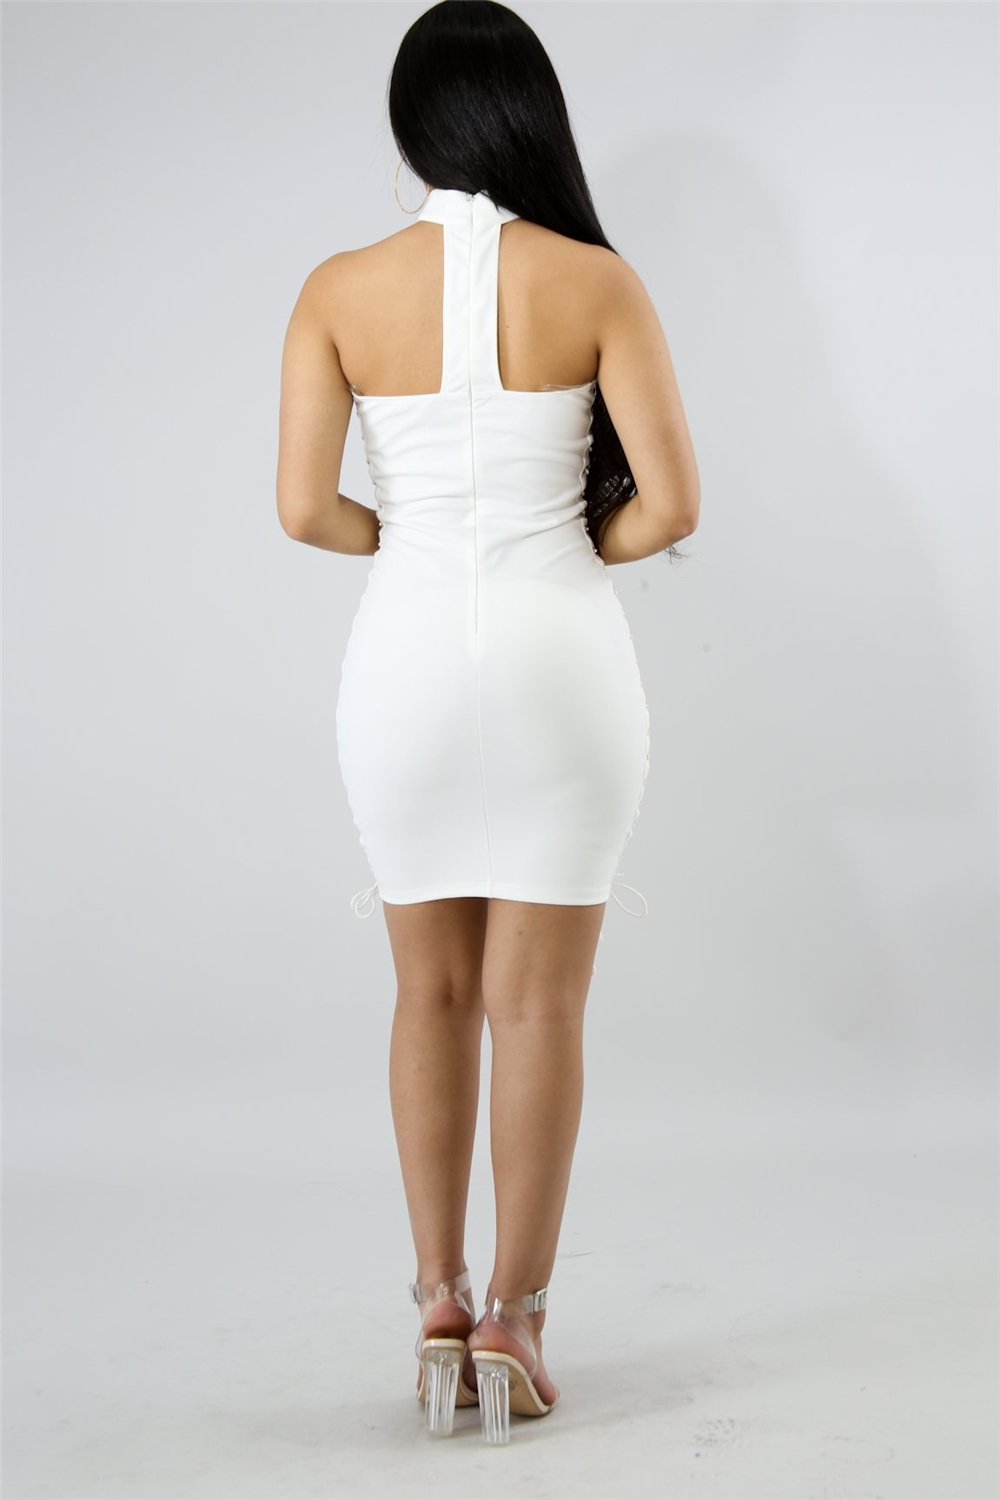 YH summer new European and American fashion side Lou sleeveless tight tight buttocks bandage short section dress banquet dress